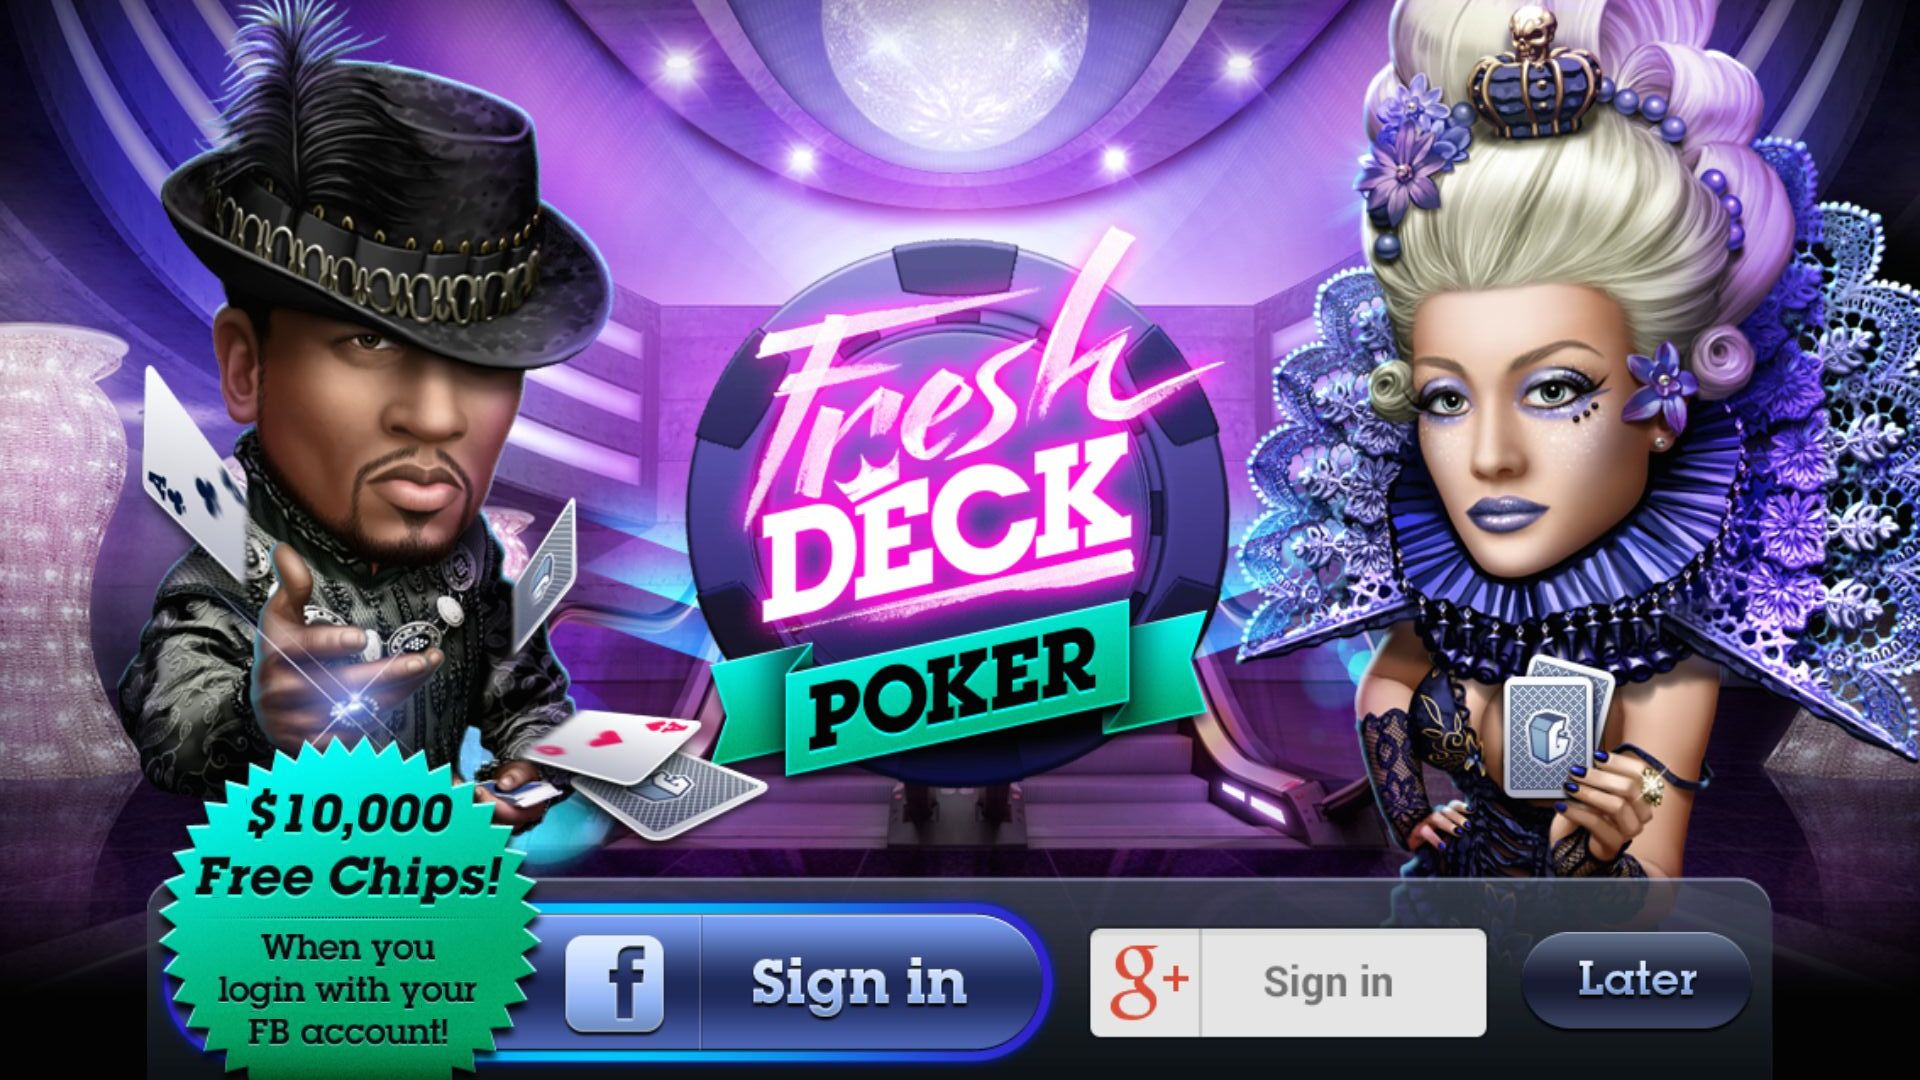 Fresh Deck Poker - Live Holdem Android App Review